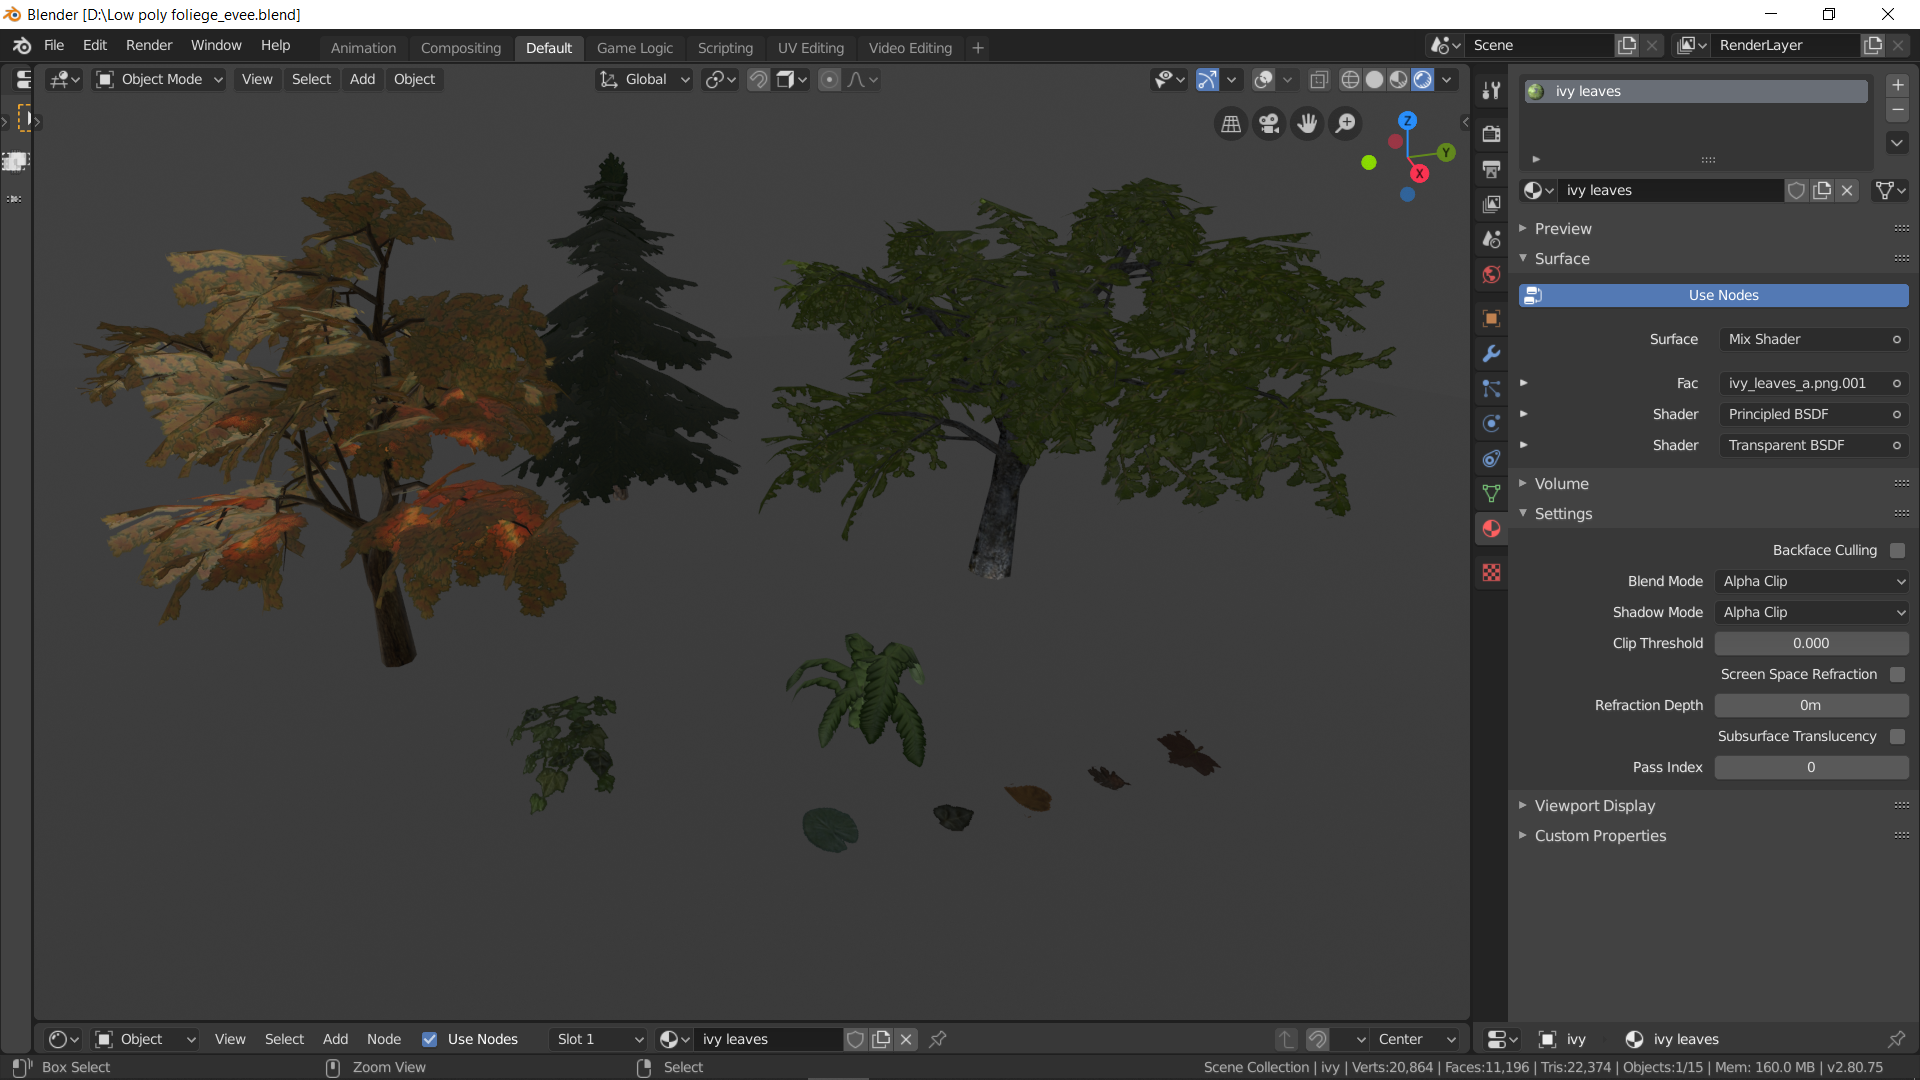 low poly foliage - blendswap #7131 ported to eevee preview image 1